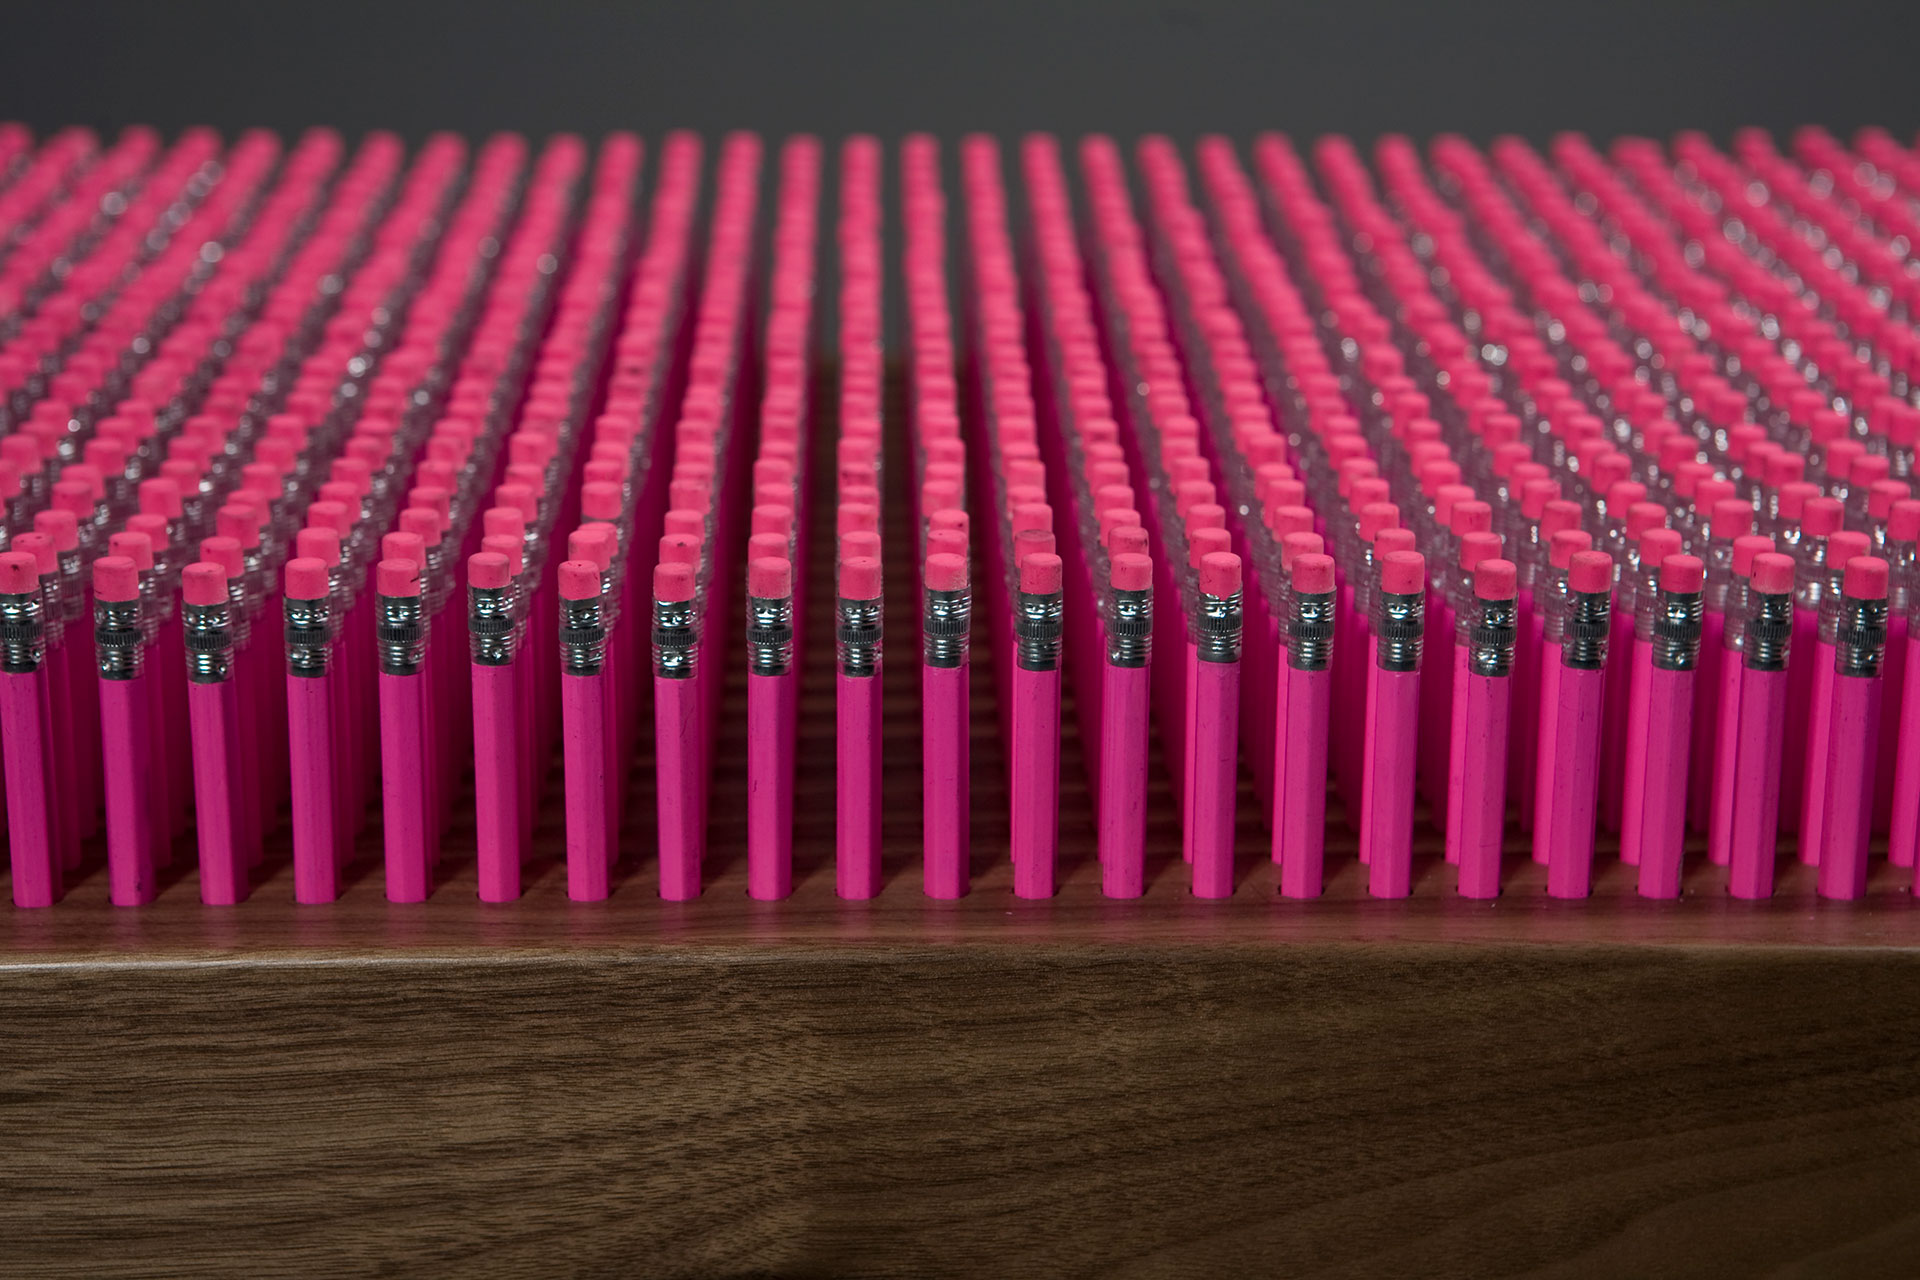 Pink pencil detail used in pencil bench